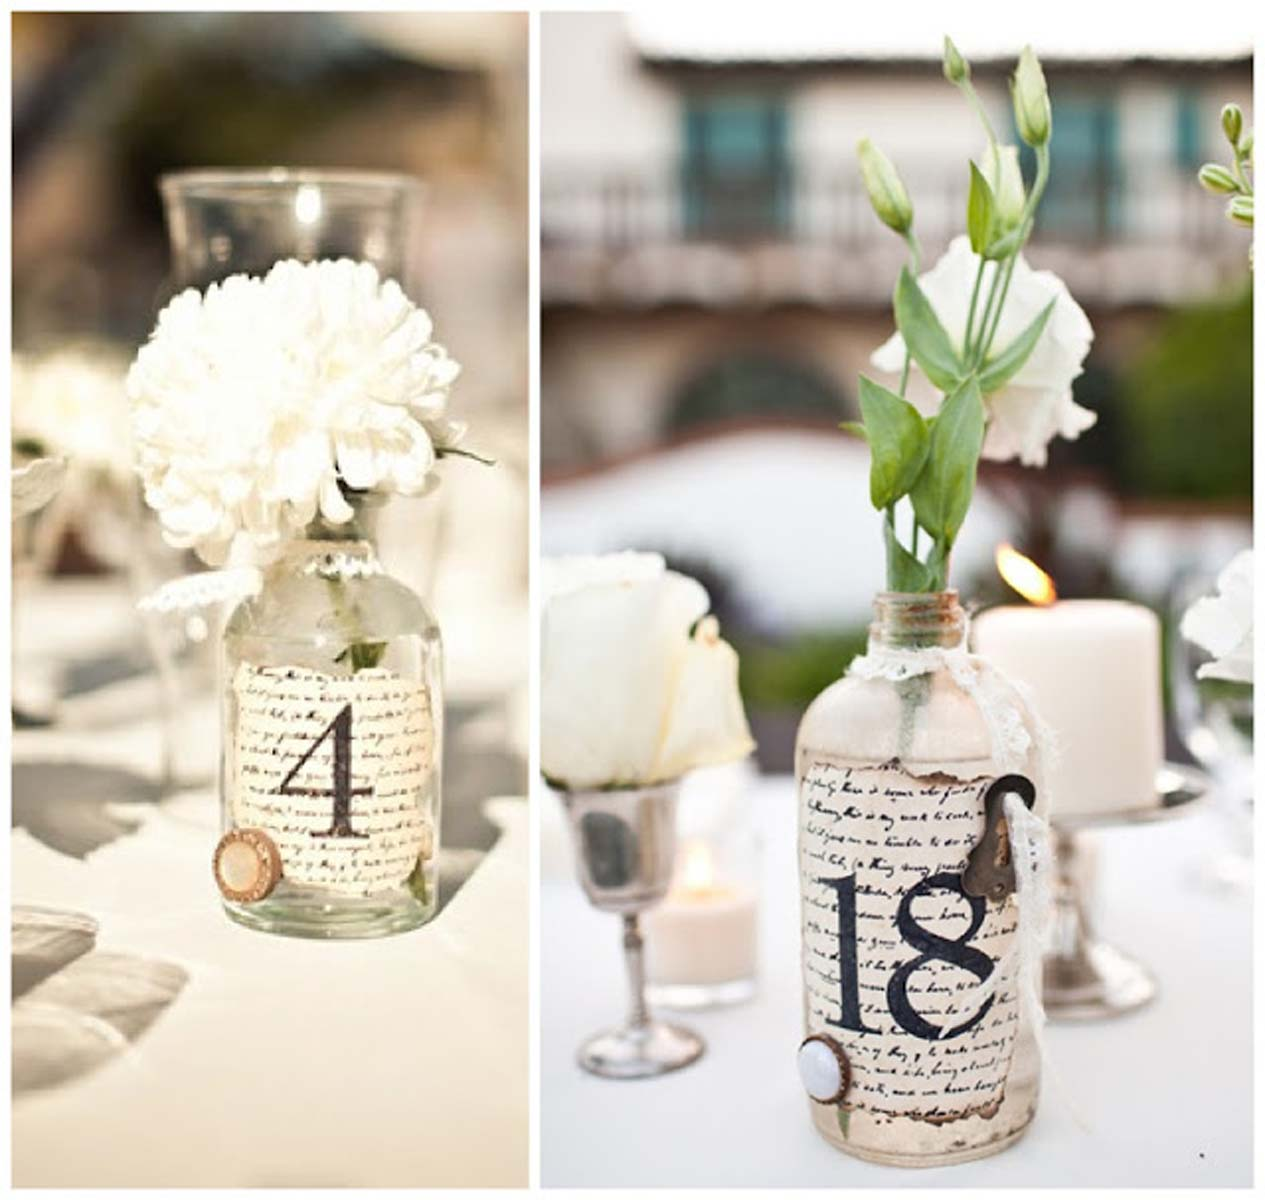 Decora tu boda con botellas